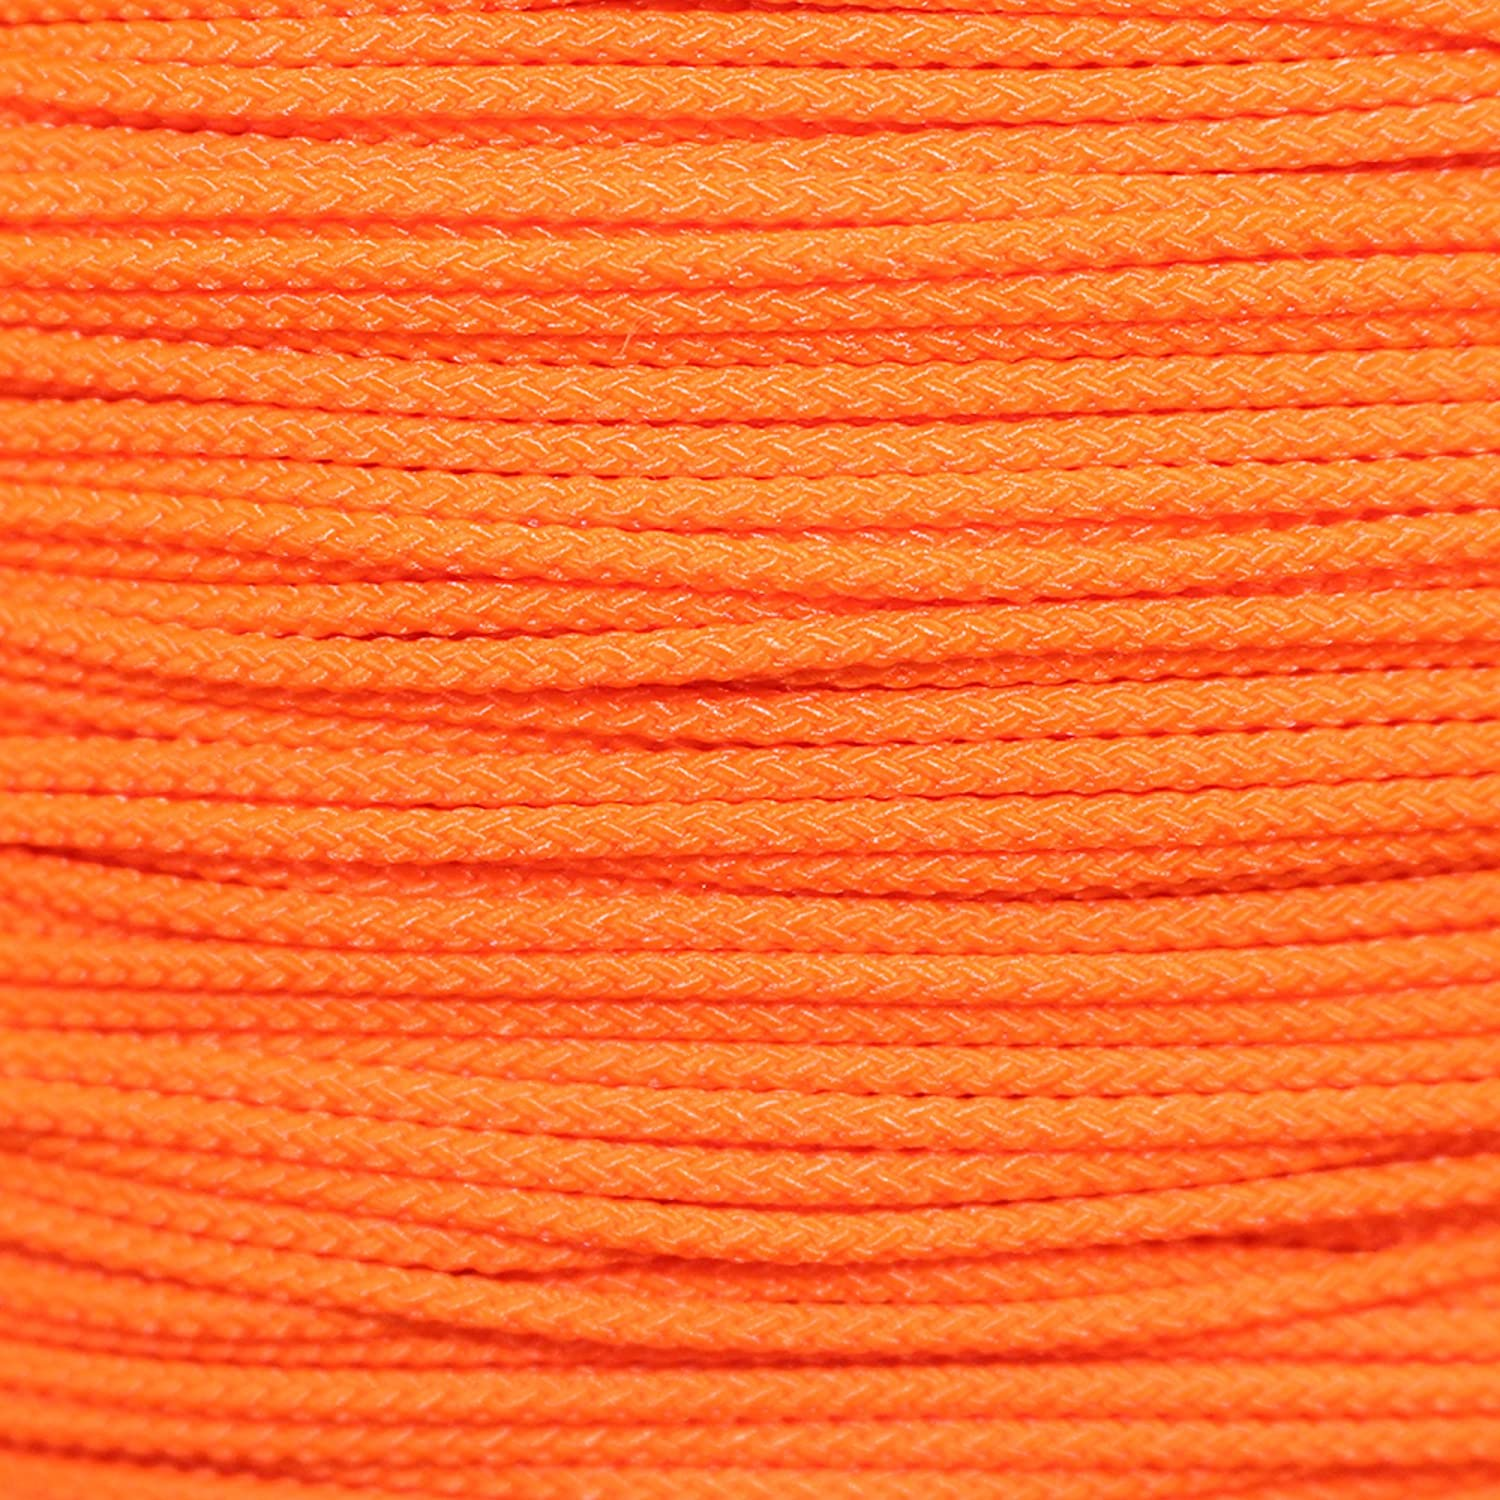 48 Safety Dive Marker Deep Sea High Visibility Neon Line for Scuba Dive Reel SGT KNOTS Scuba Diving Reel Line Dacron Polyester #18 Wreck and Cave Diving Dive Float Flag 36 24